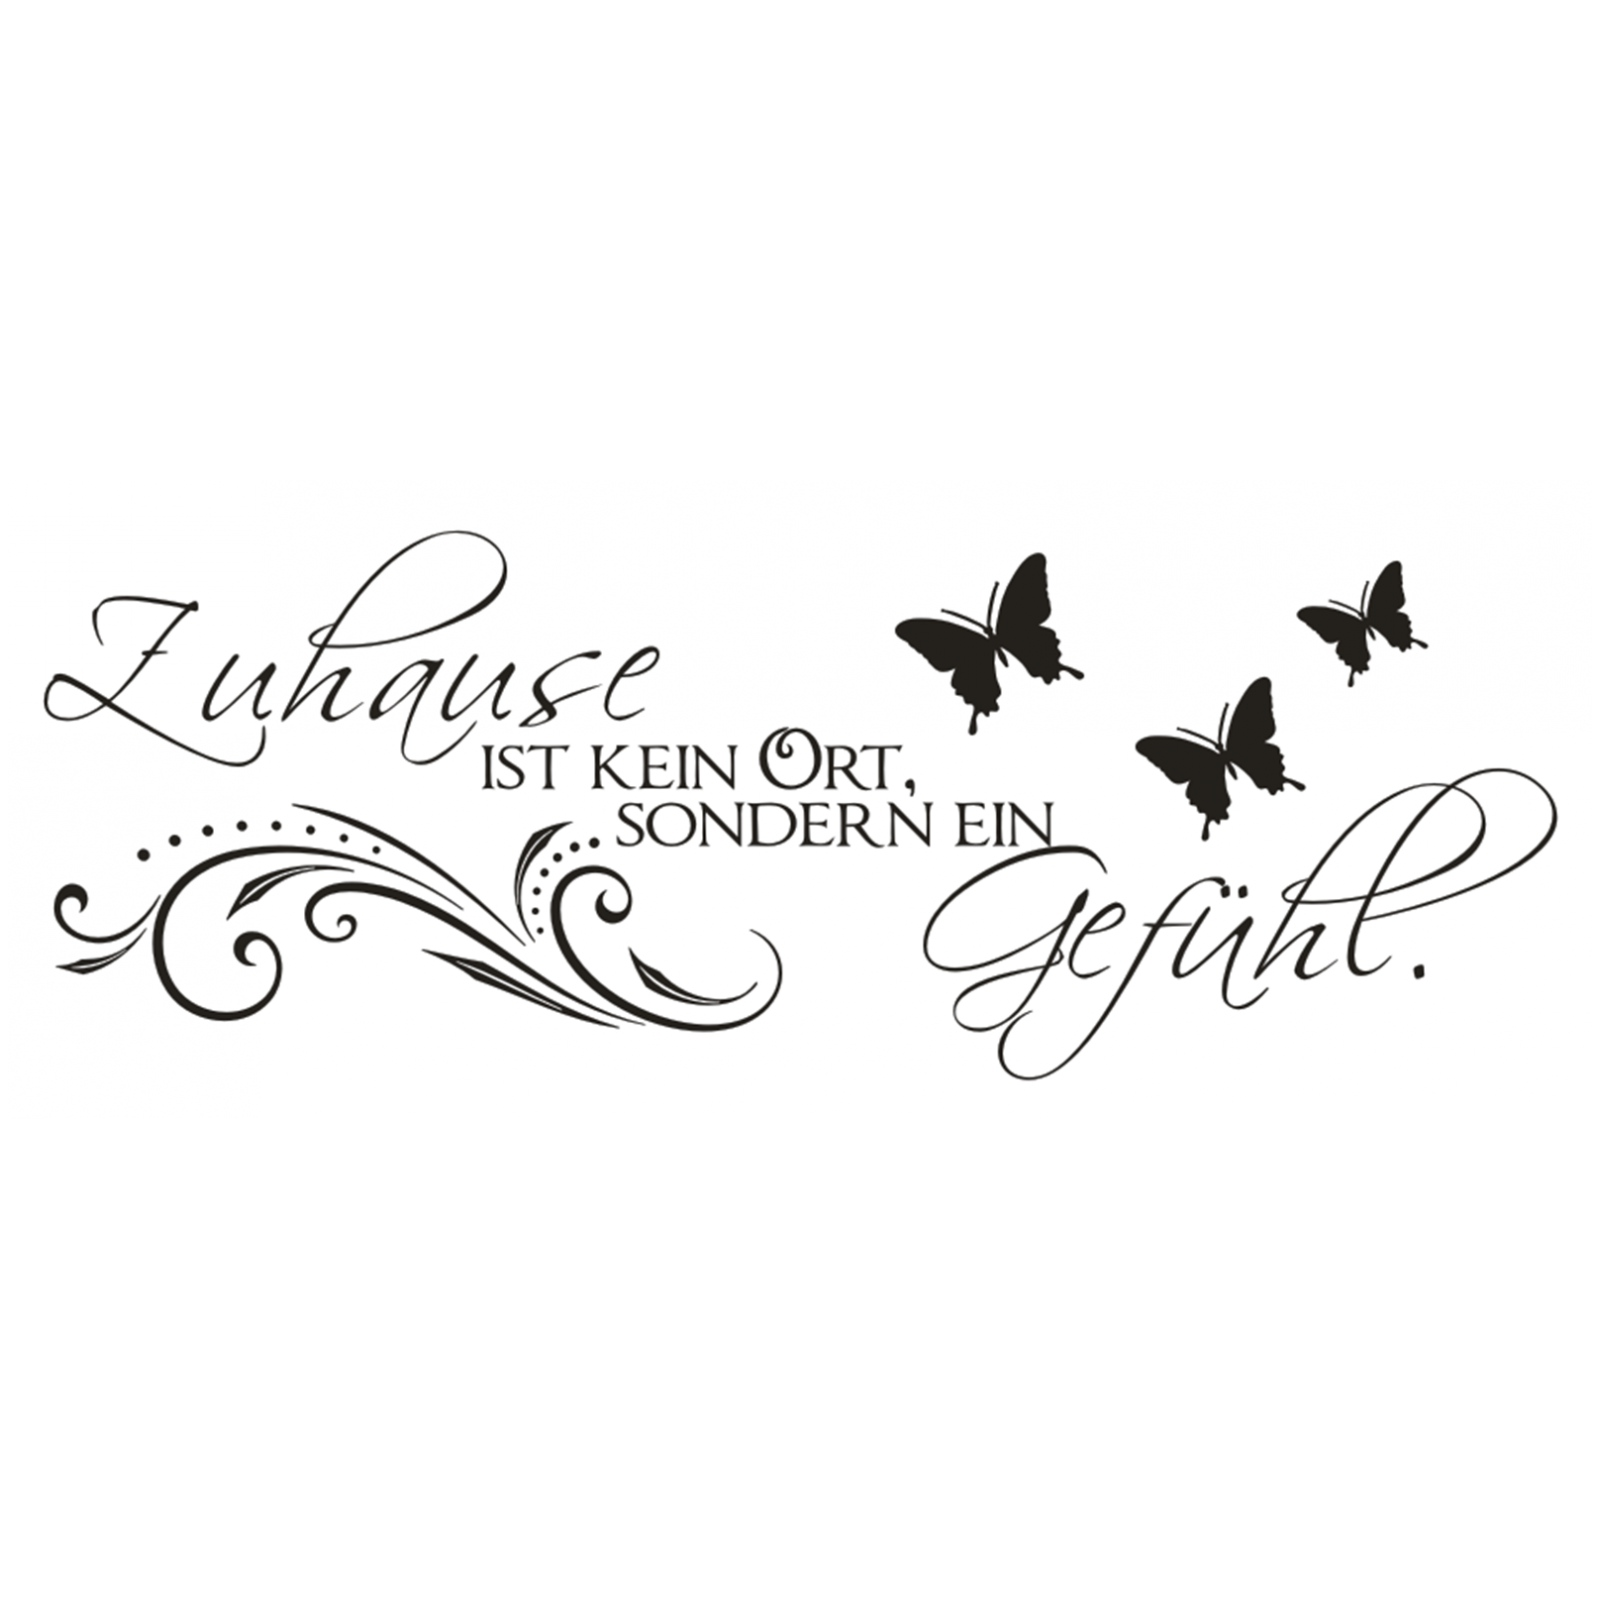 wandtattoo spruch zuhause kein ort gef hl wandsticker sticker wandaufkleber 4 ebay. Black Bedroom Furniture Sets. Home Design Ideas